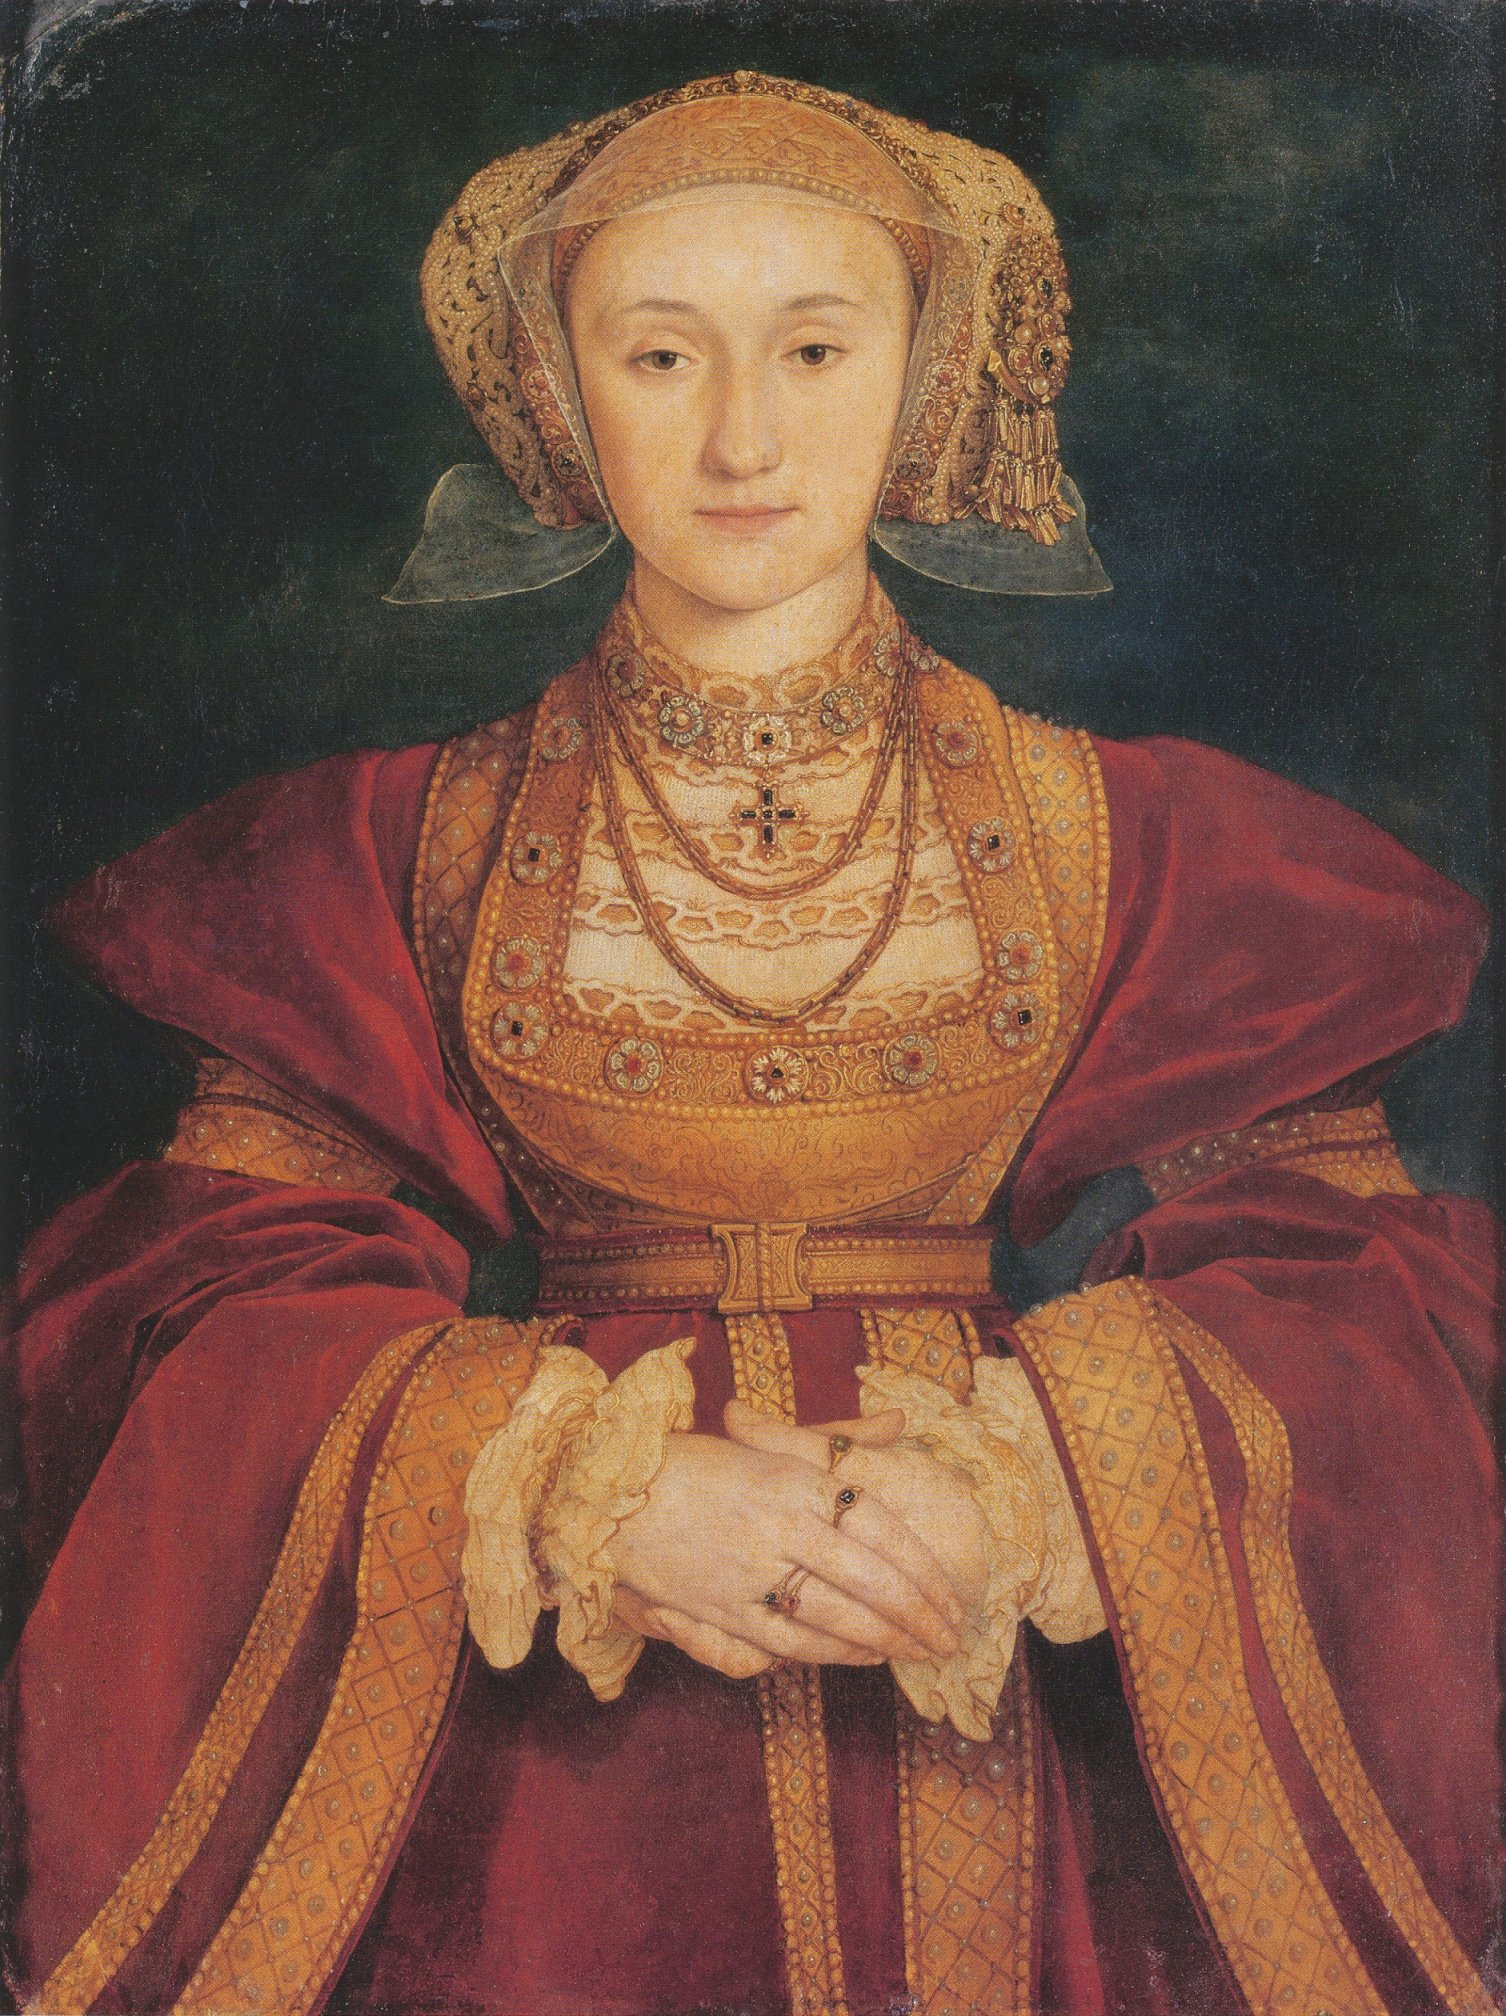 Portrait by Hans Holbein the Younger, c. 1539. Oil and Tempera on Parchment mounted on canvas, Musée du Louvre, Paris.